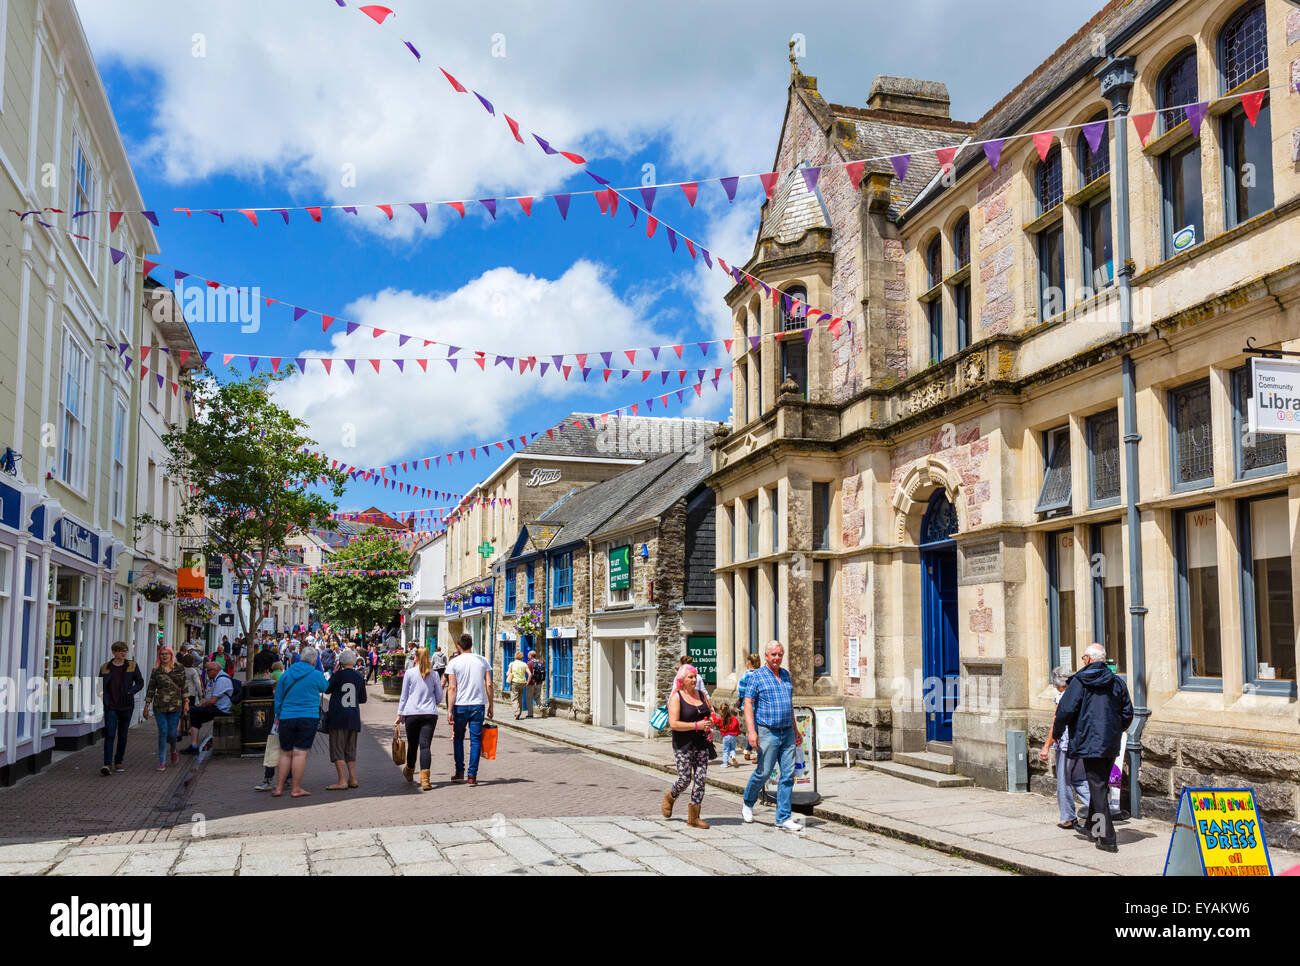 Shops on Pydar Street in the city centre, Truro, Cornwall, England, UK - Stock Image